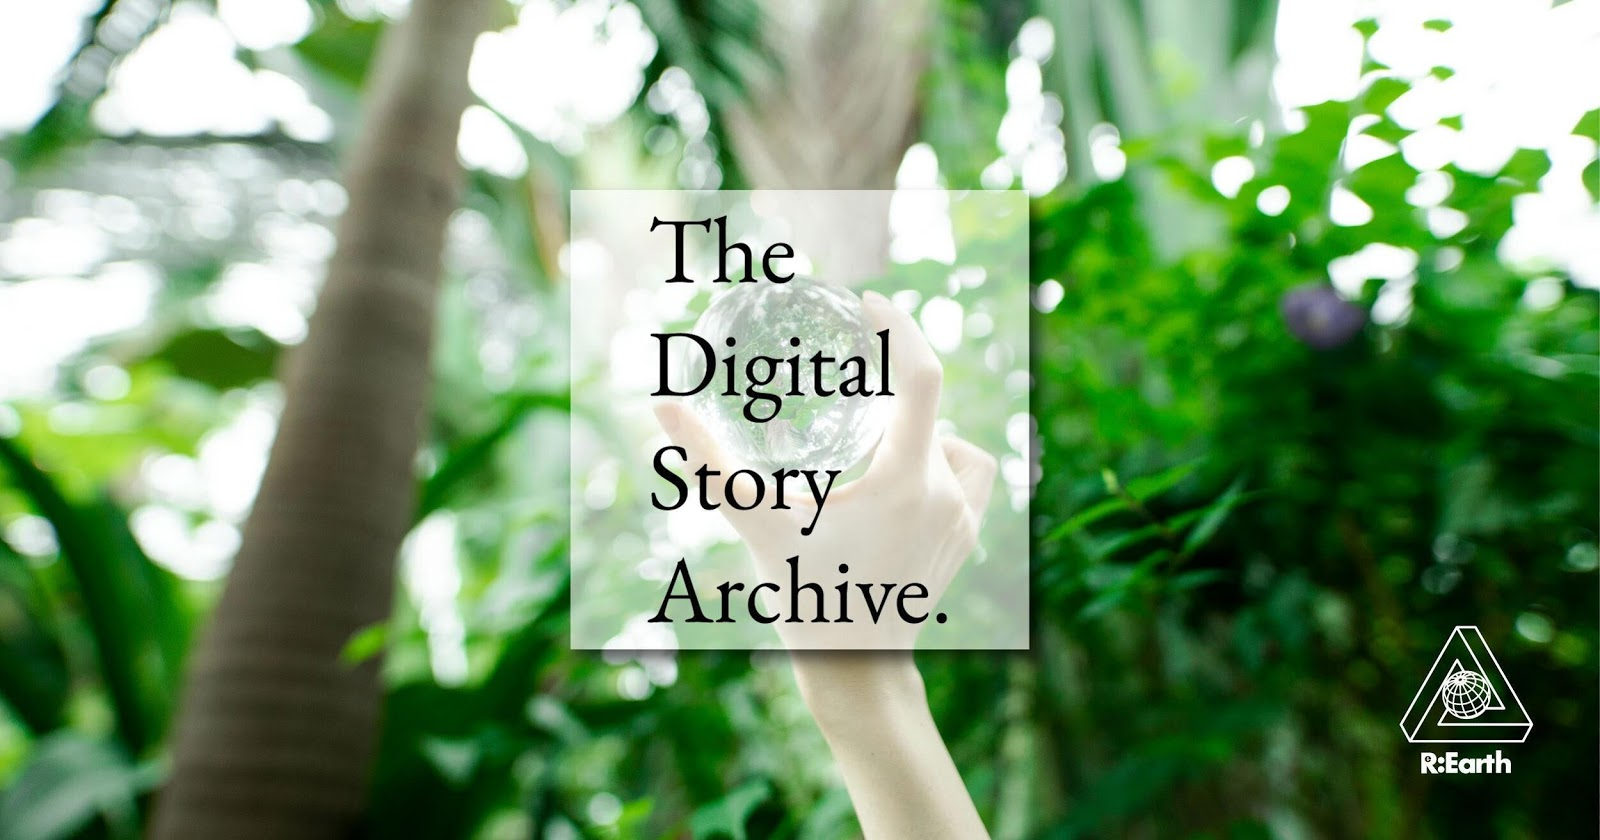 Visualize data globally - Re:Earth, a web service that allows anyone to publish their archives digitally, has been launched